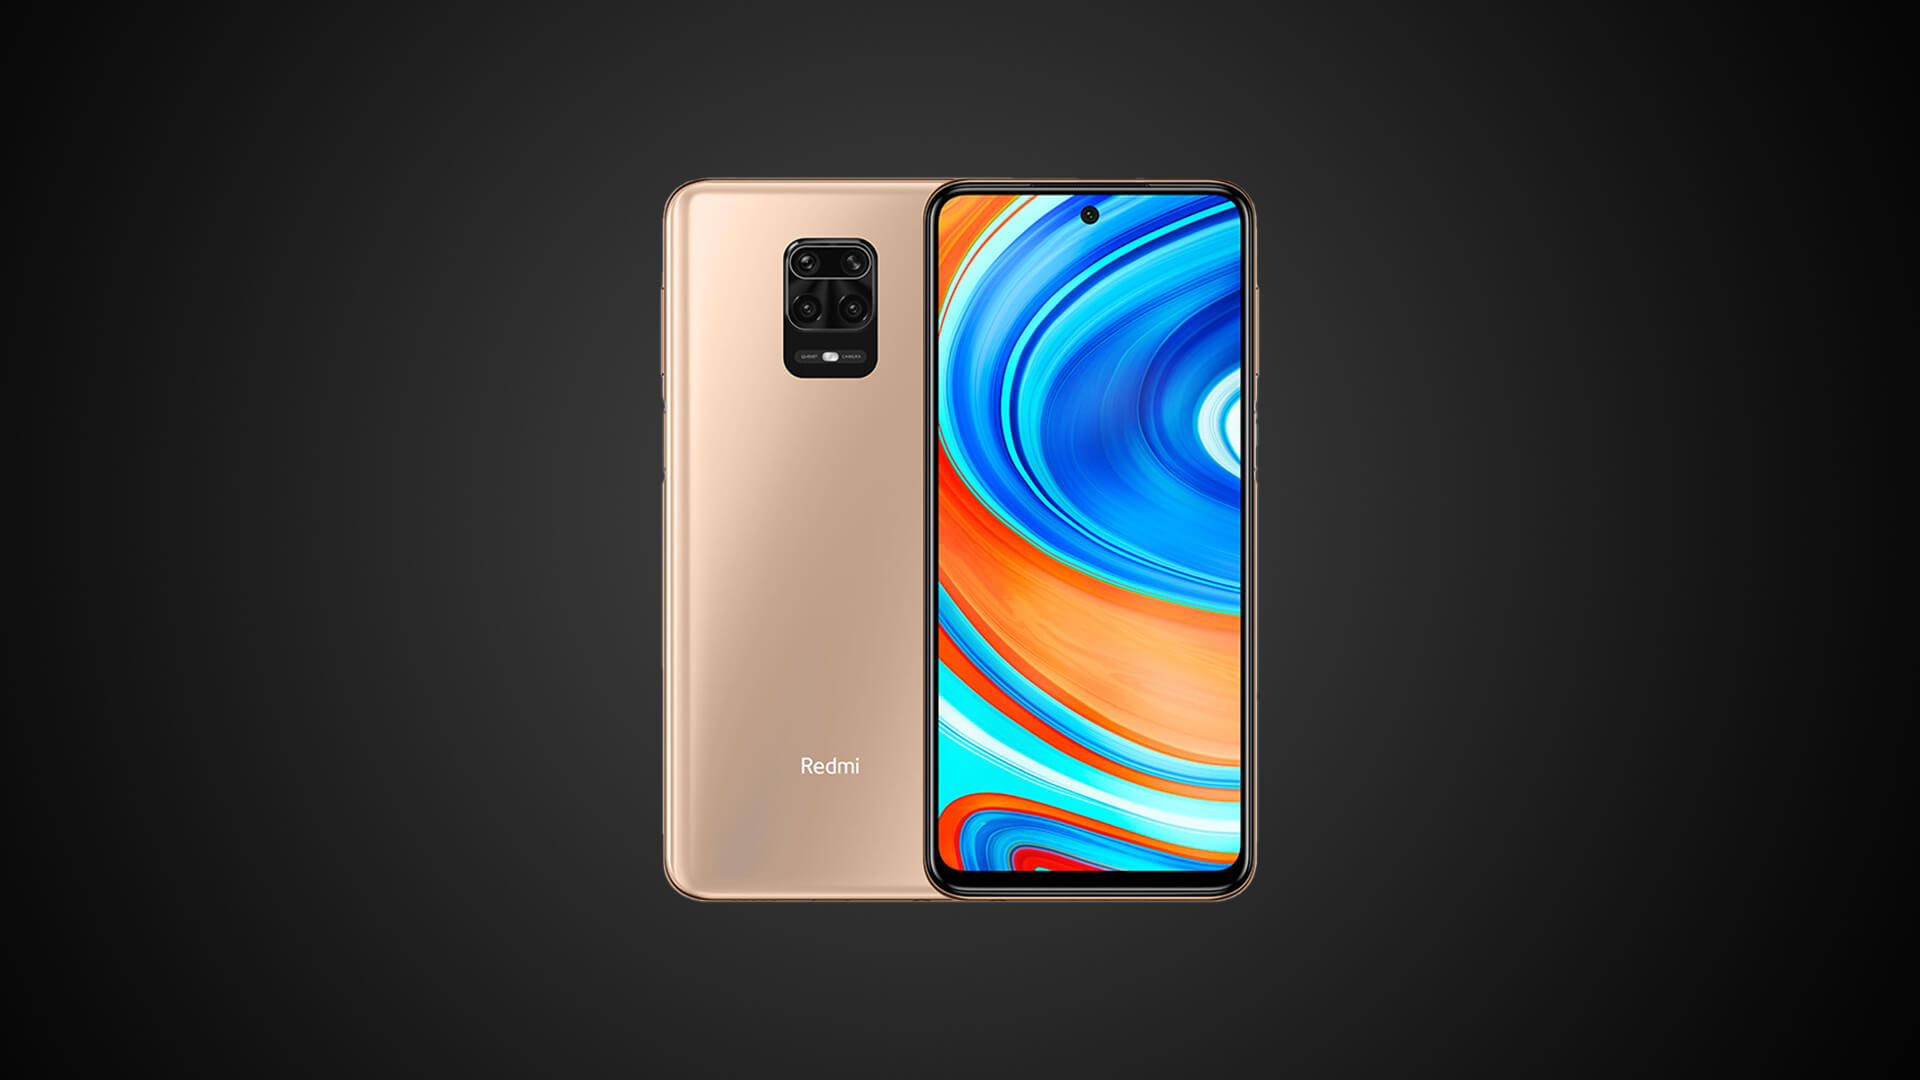 Xiaomi Redmi Note 9 Pro, Note 9 Pro Max Now Available in Champagne Gold Colour in India